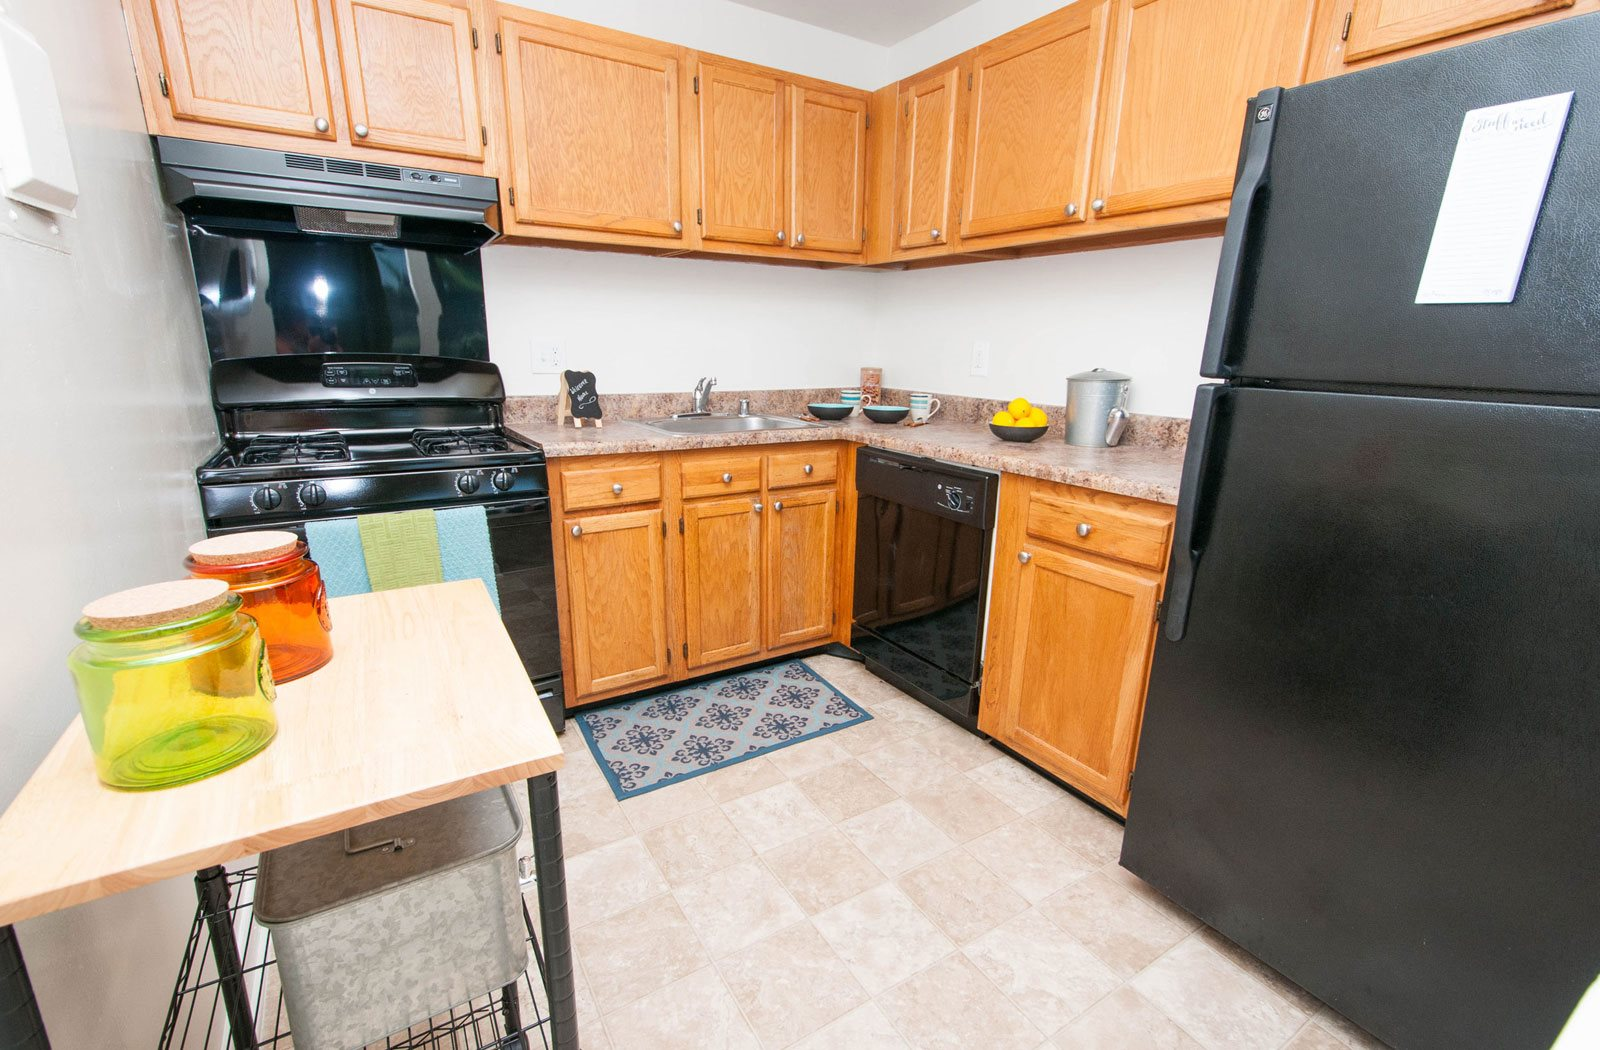 Spacious Kitchen with Pantry Cabinet at Doncaster Village Apartments, Parkville, MD, 21234